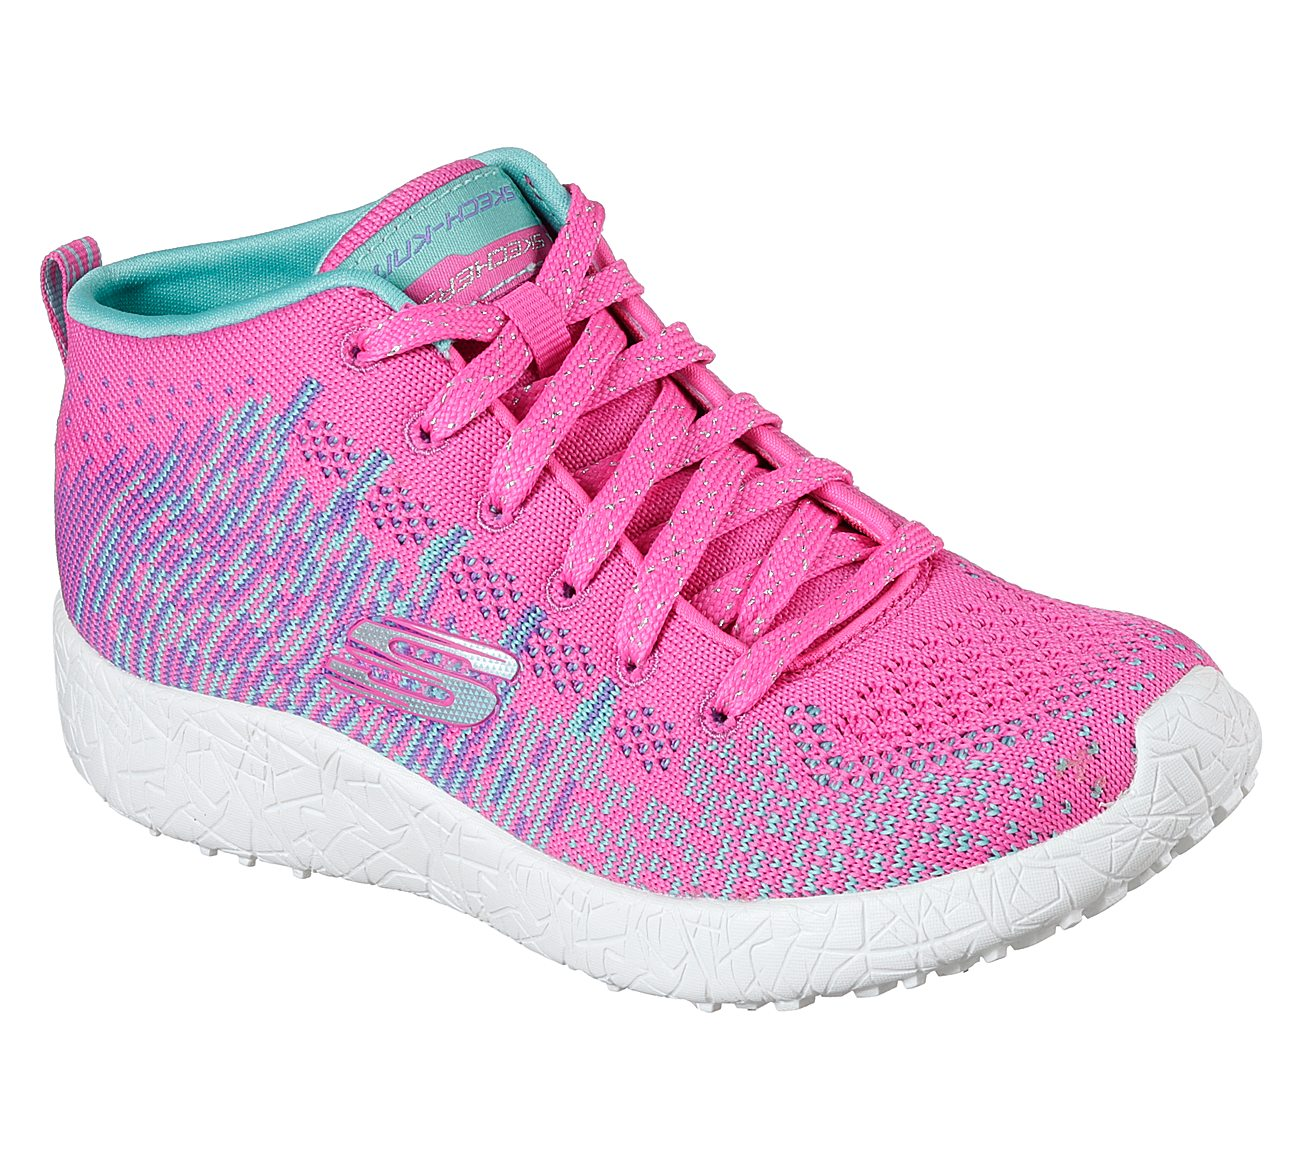 e23d2b71d07b Buy SKECHERS Burst - Sweet Symphony SKECHERS Sport Shoes only £49.00